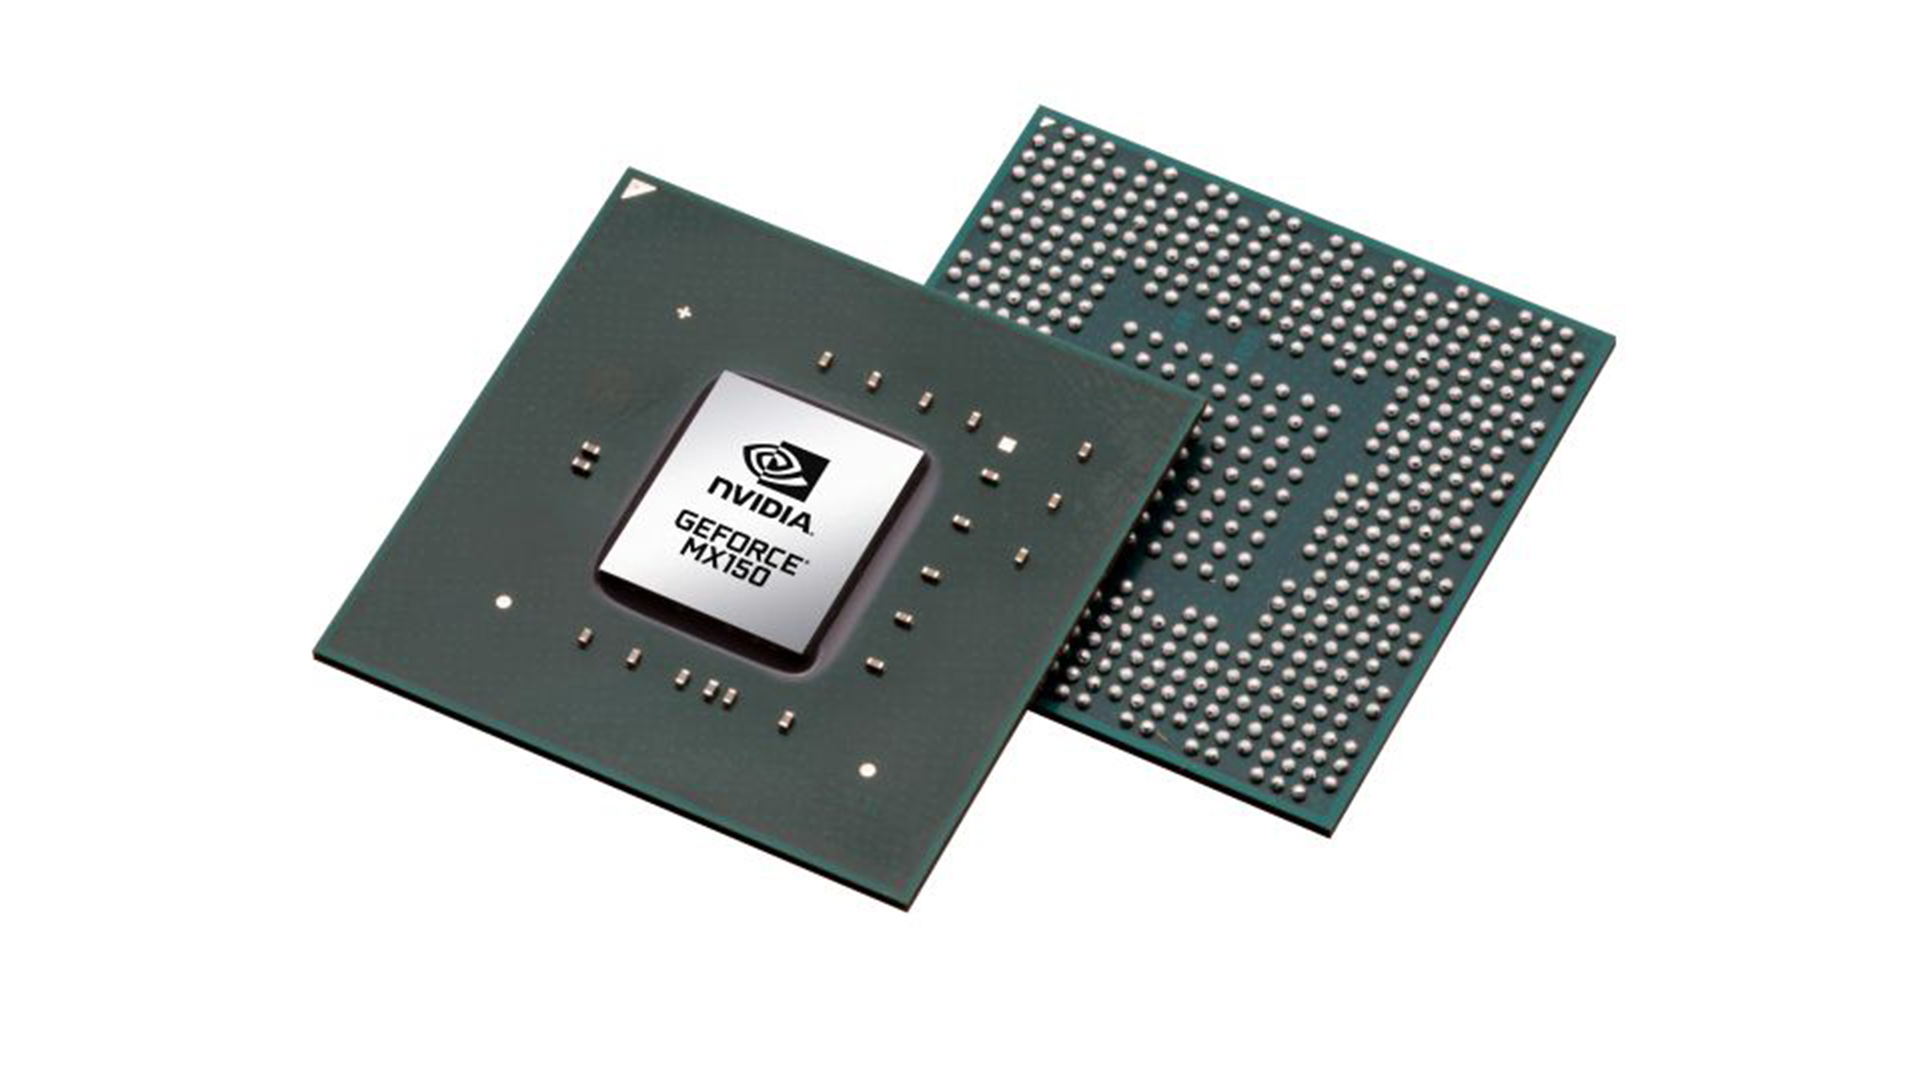 筆電用的入門款 Pascal 架構 GPU,NVIDIA GeForce MX150 登場